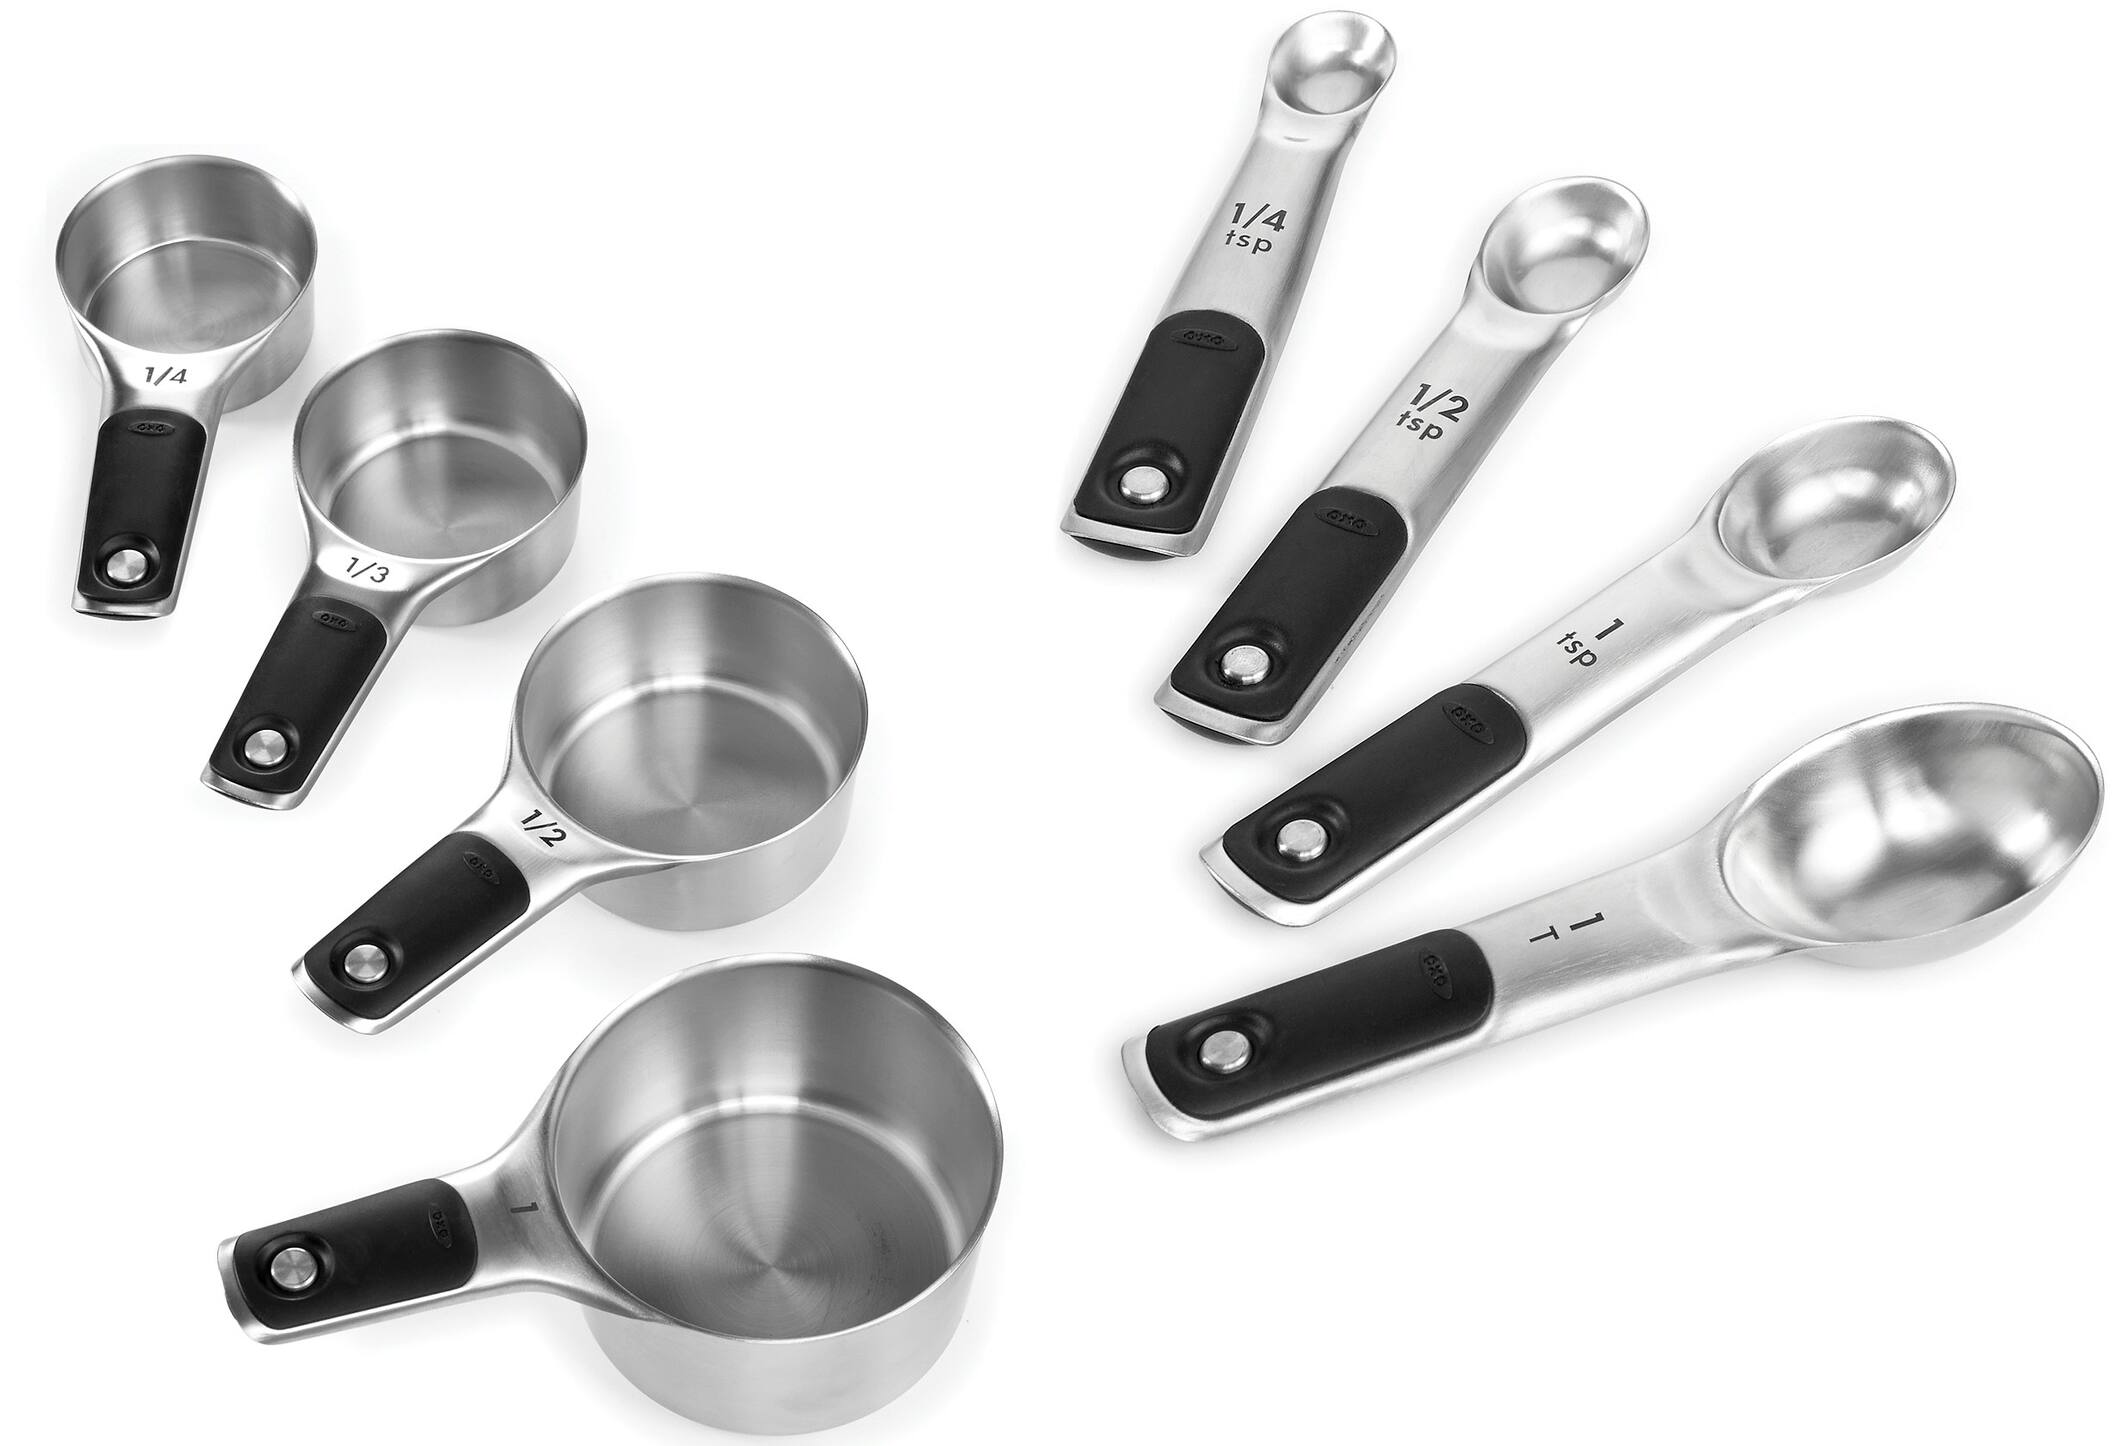 8-Piece OXO Good Grips Stainless Steel Magnetic Measuring Cups/Spoons (4-Piece + 4-Piece) for $19.98 at Macy's (in-store pick up)